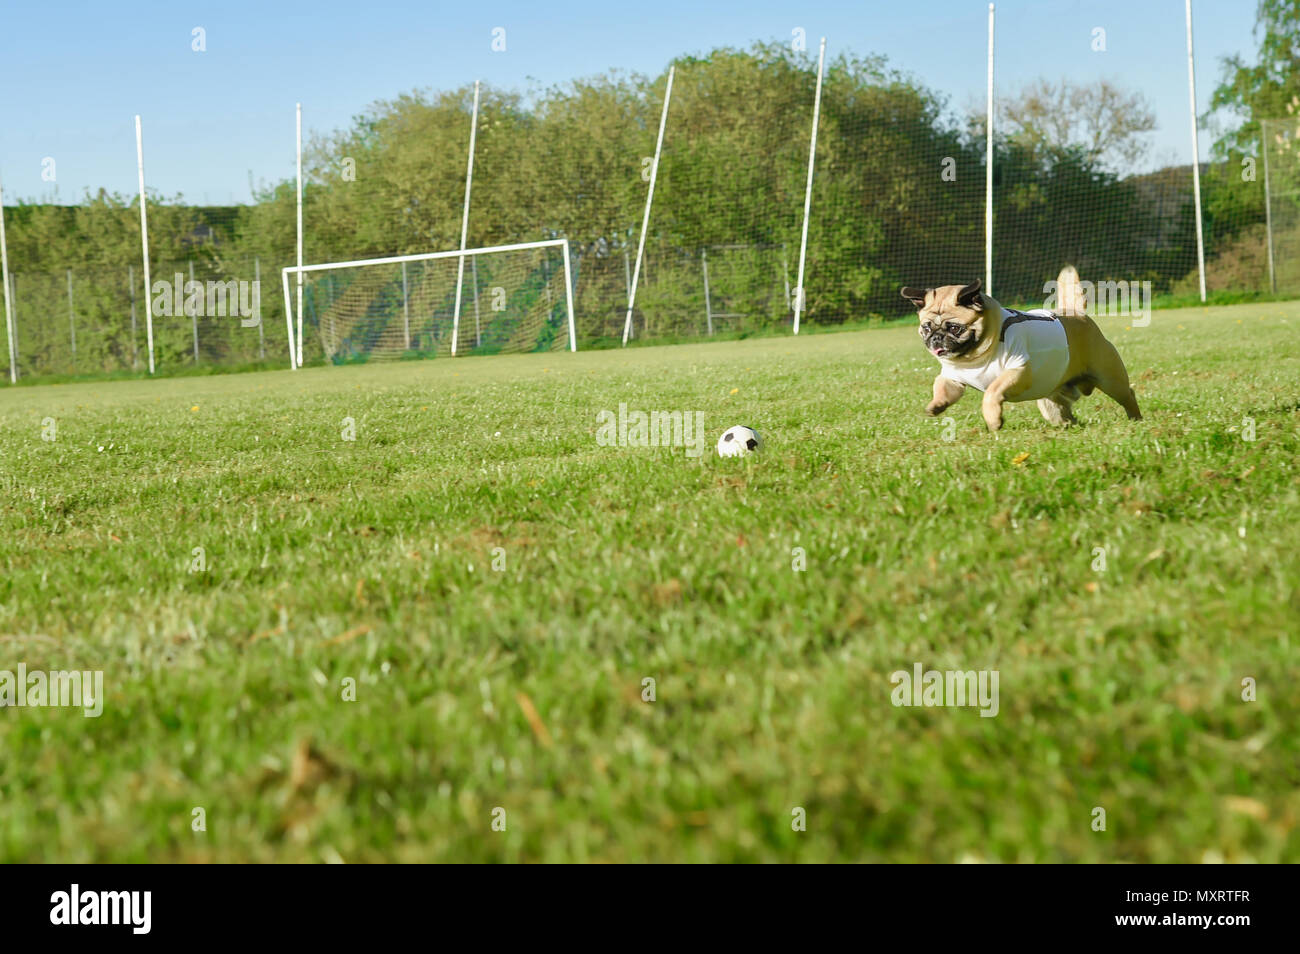 Small dog of breed pug chases after a small football. He jumps through the grass. He is attentive and active. The dog is wearing a white tricot. - Stock Image